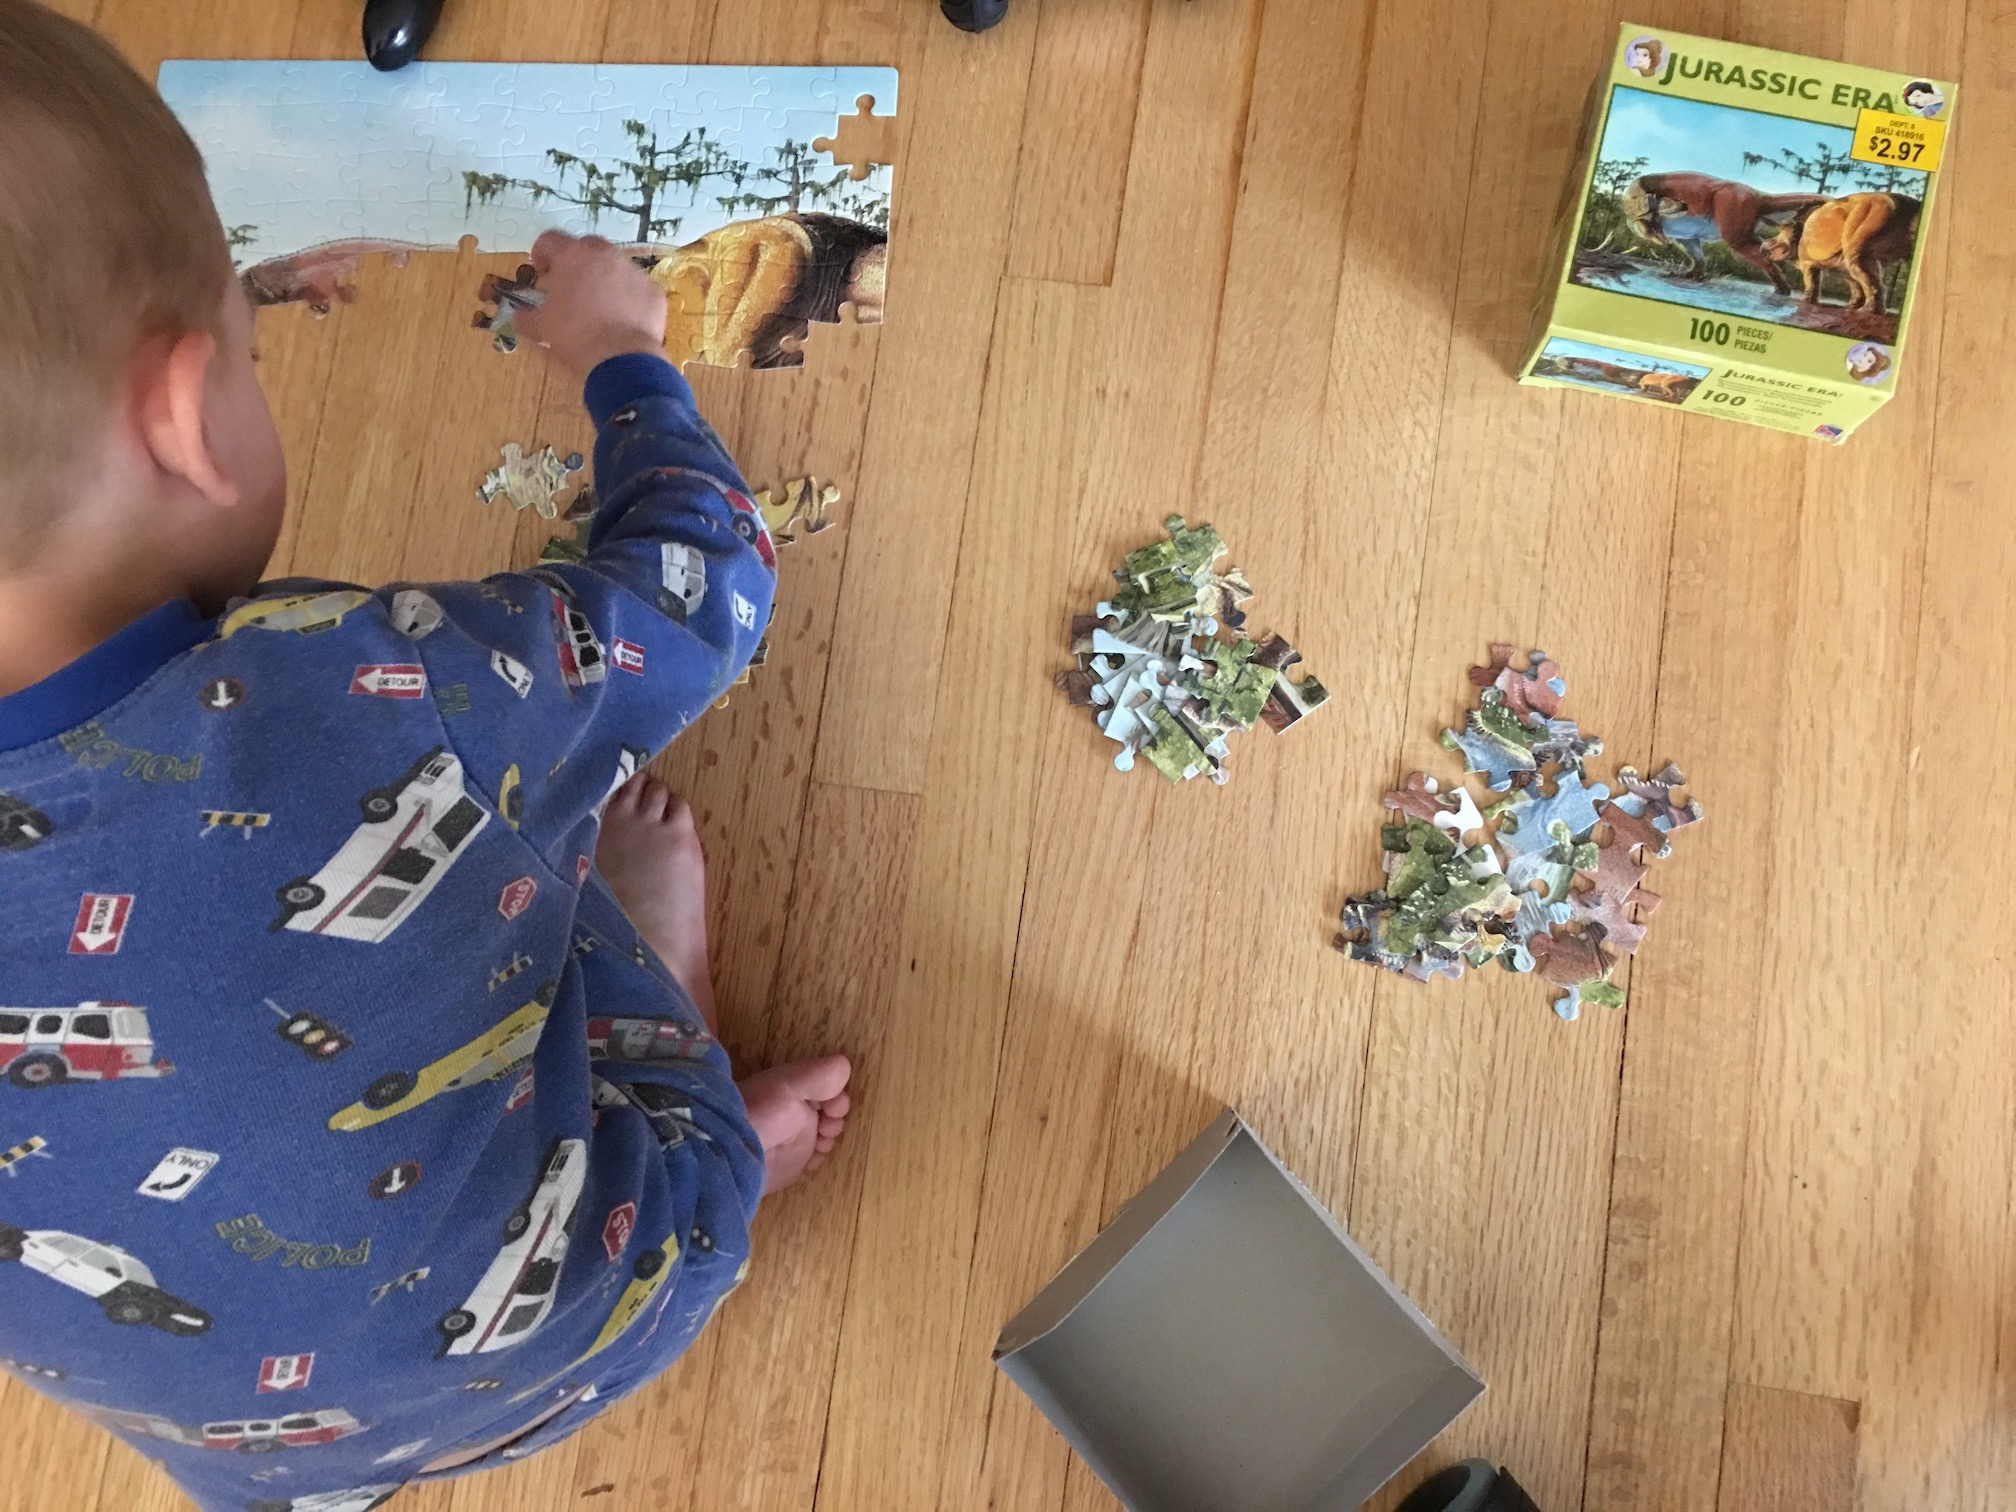 A young boy is putting together a puzzle from the jurassic era. Piles of sorted puzzle pieces sit beside him.